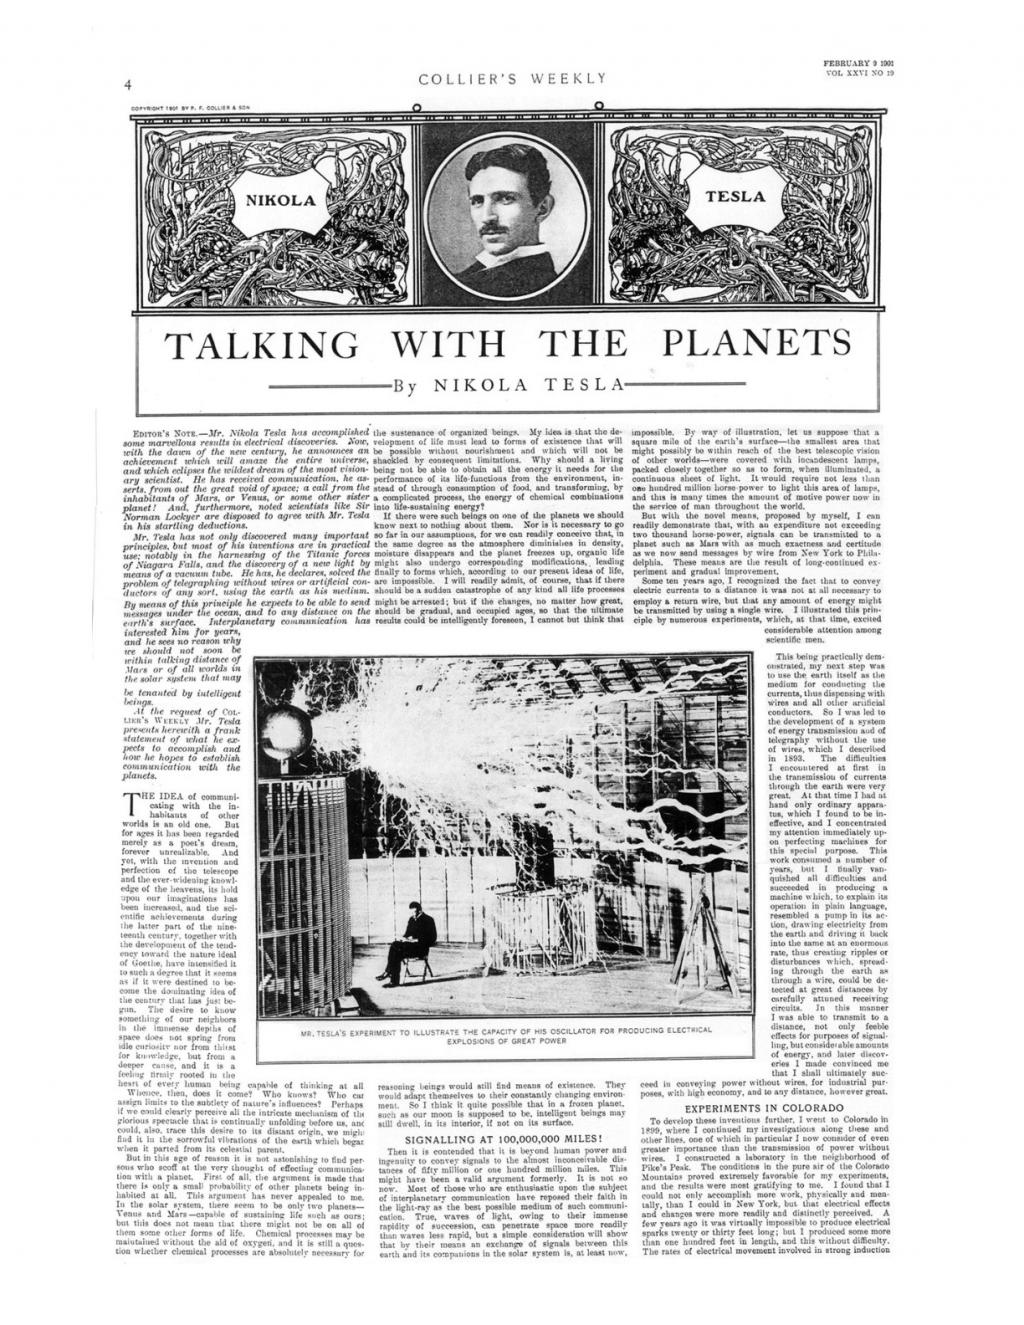 Preview of Talking with the Planets article